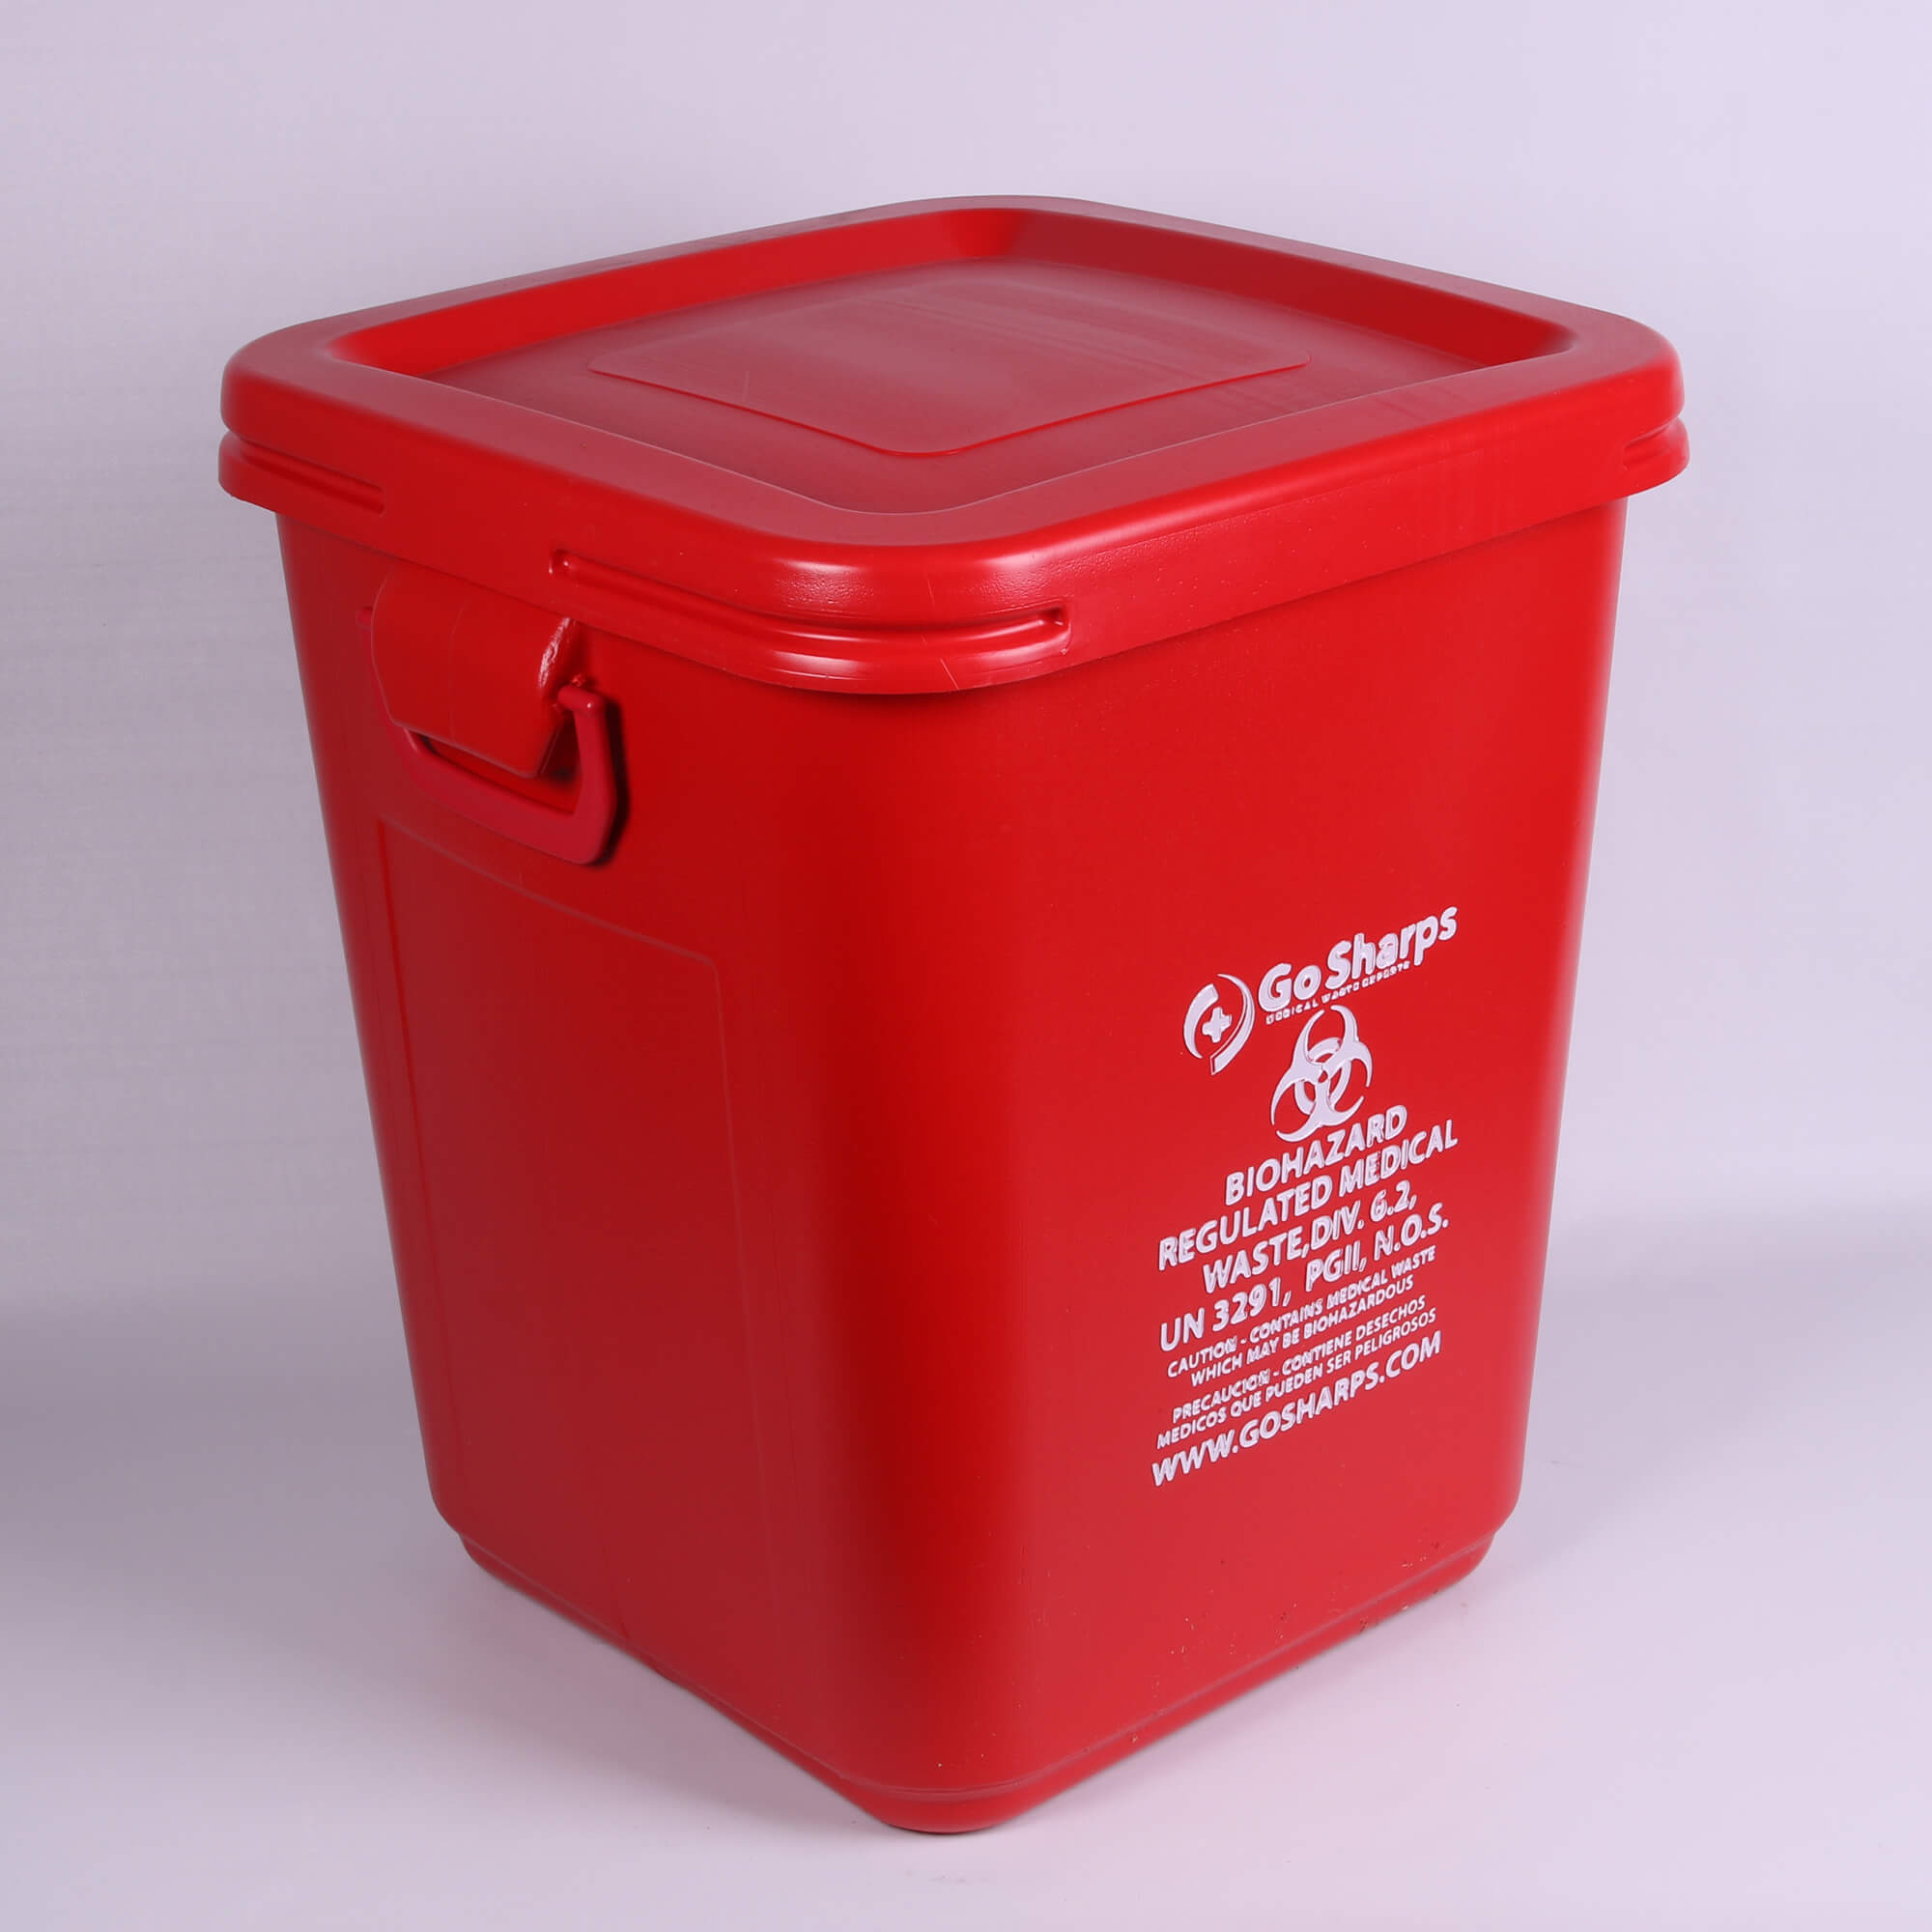 Medical Waste Containers Gosharps